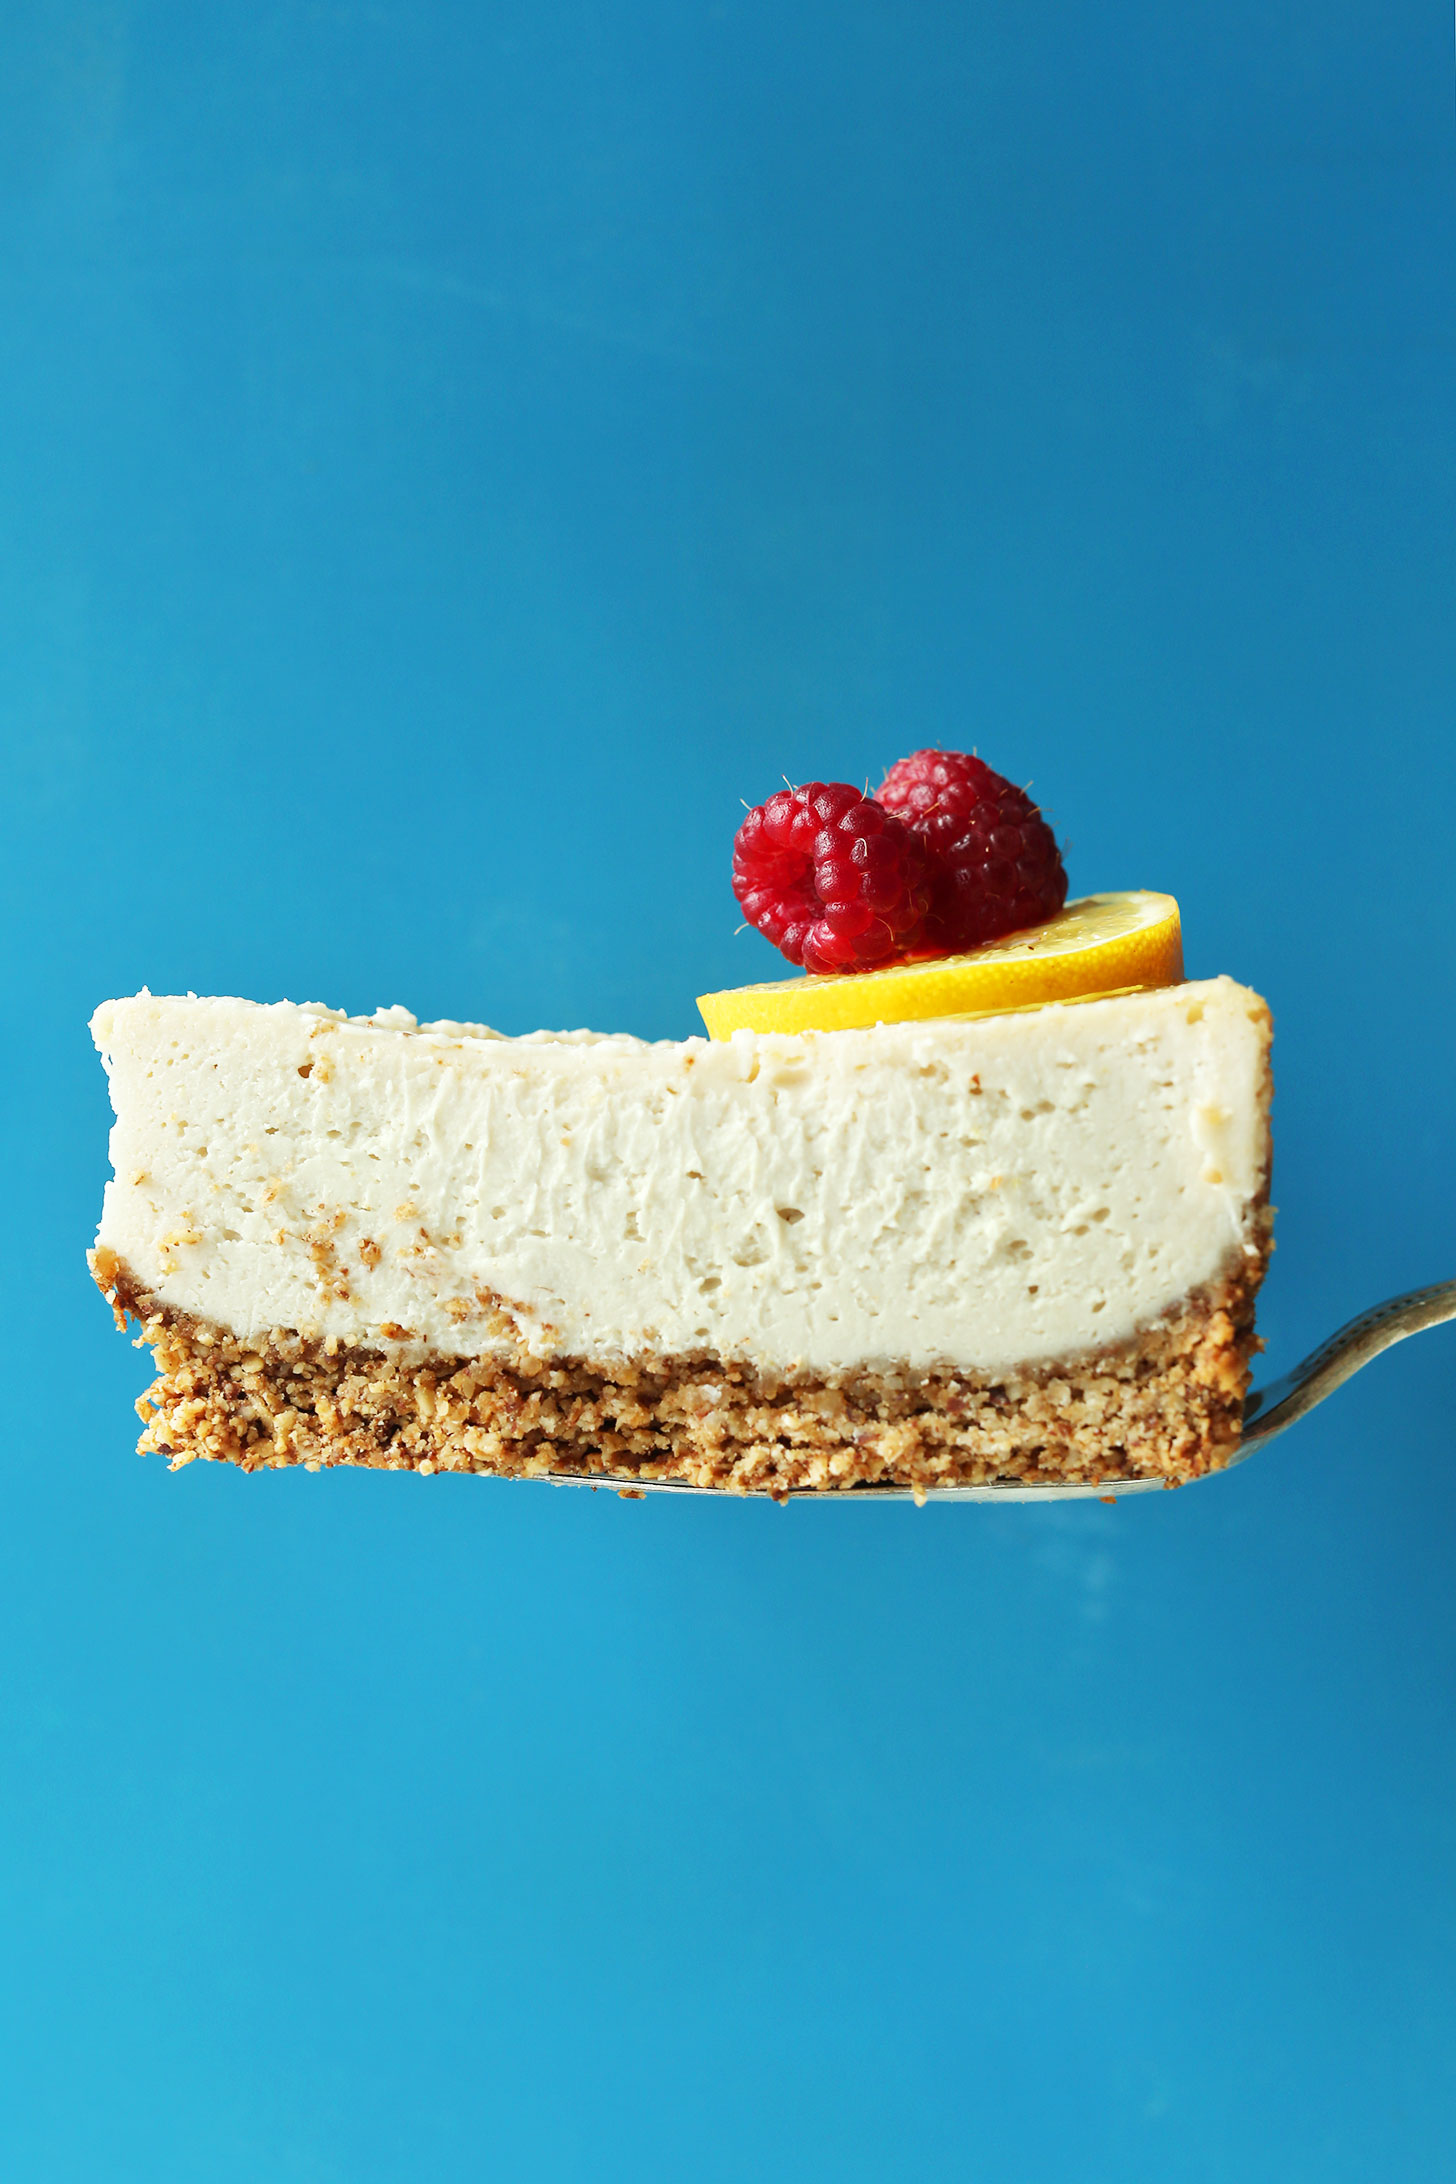 Slice of our easy vegan gluten-free baked cheesecake